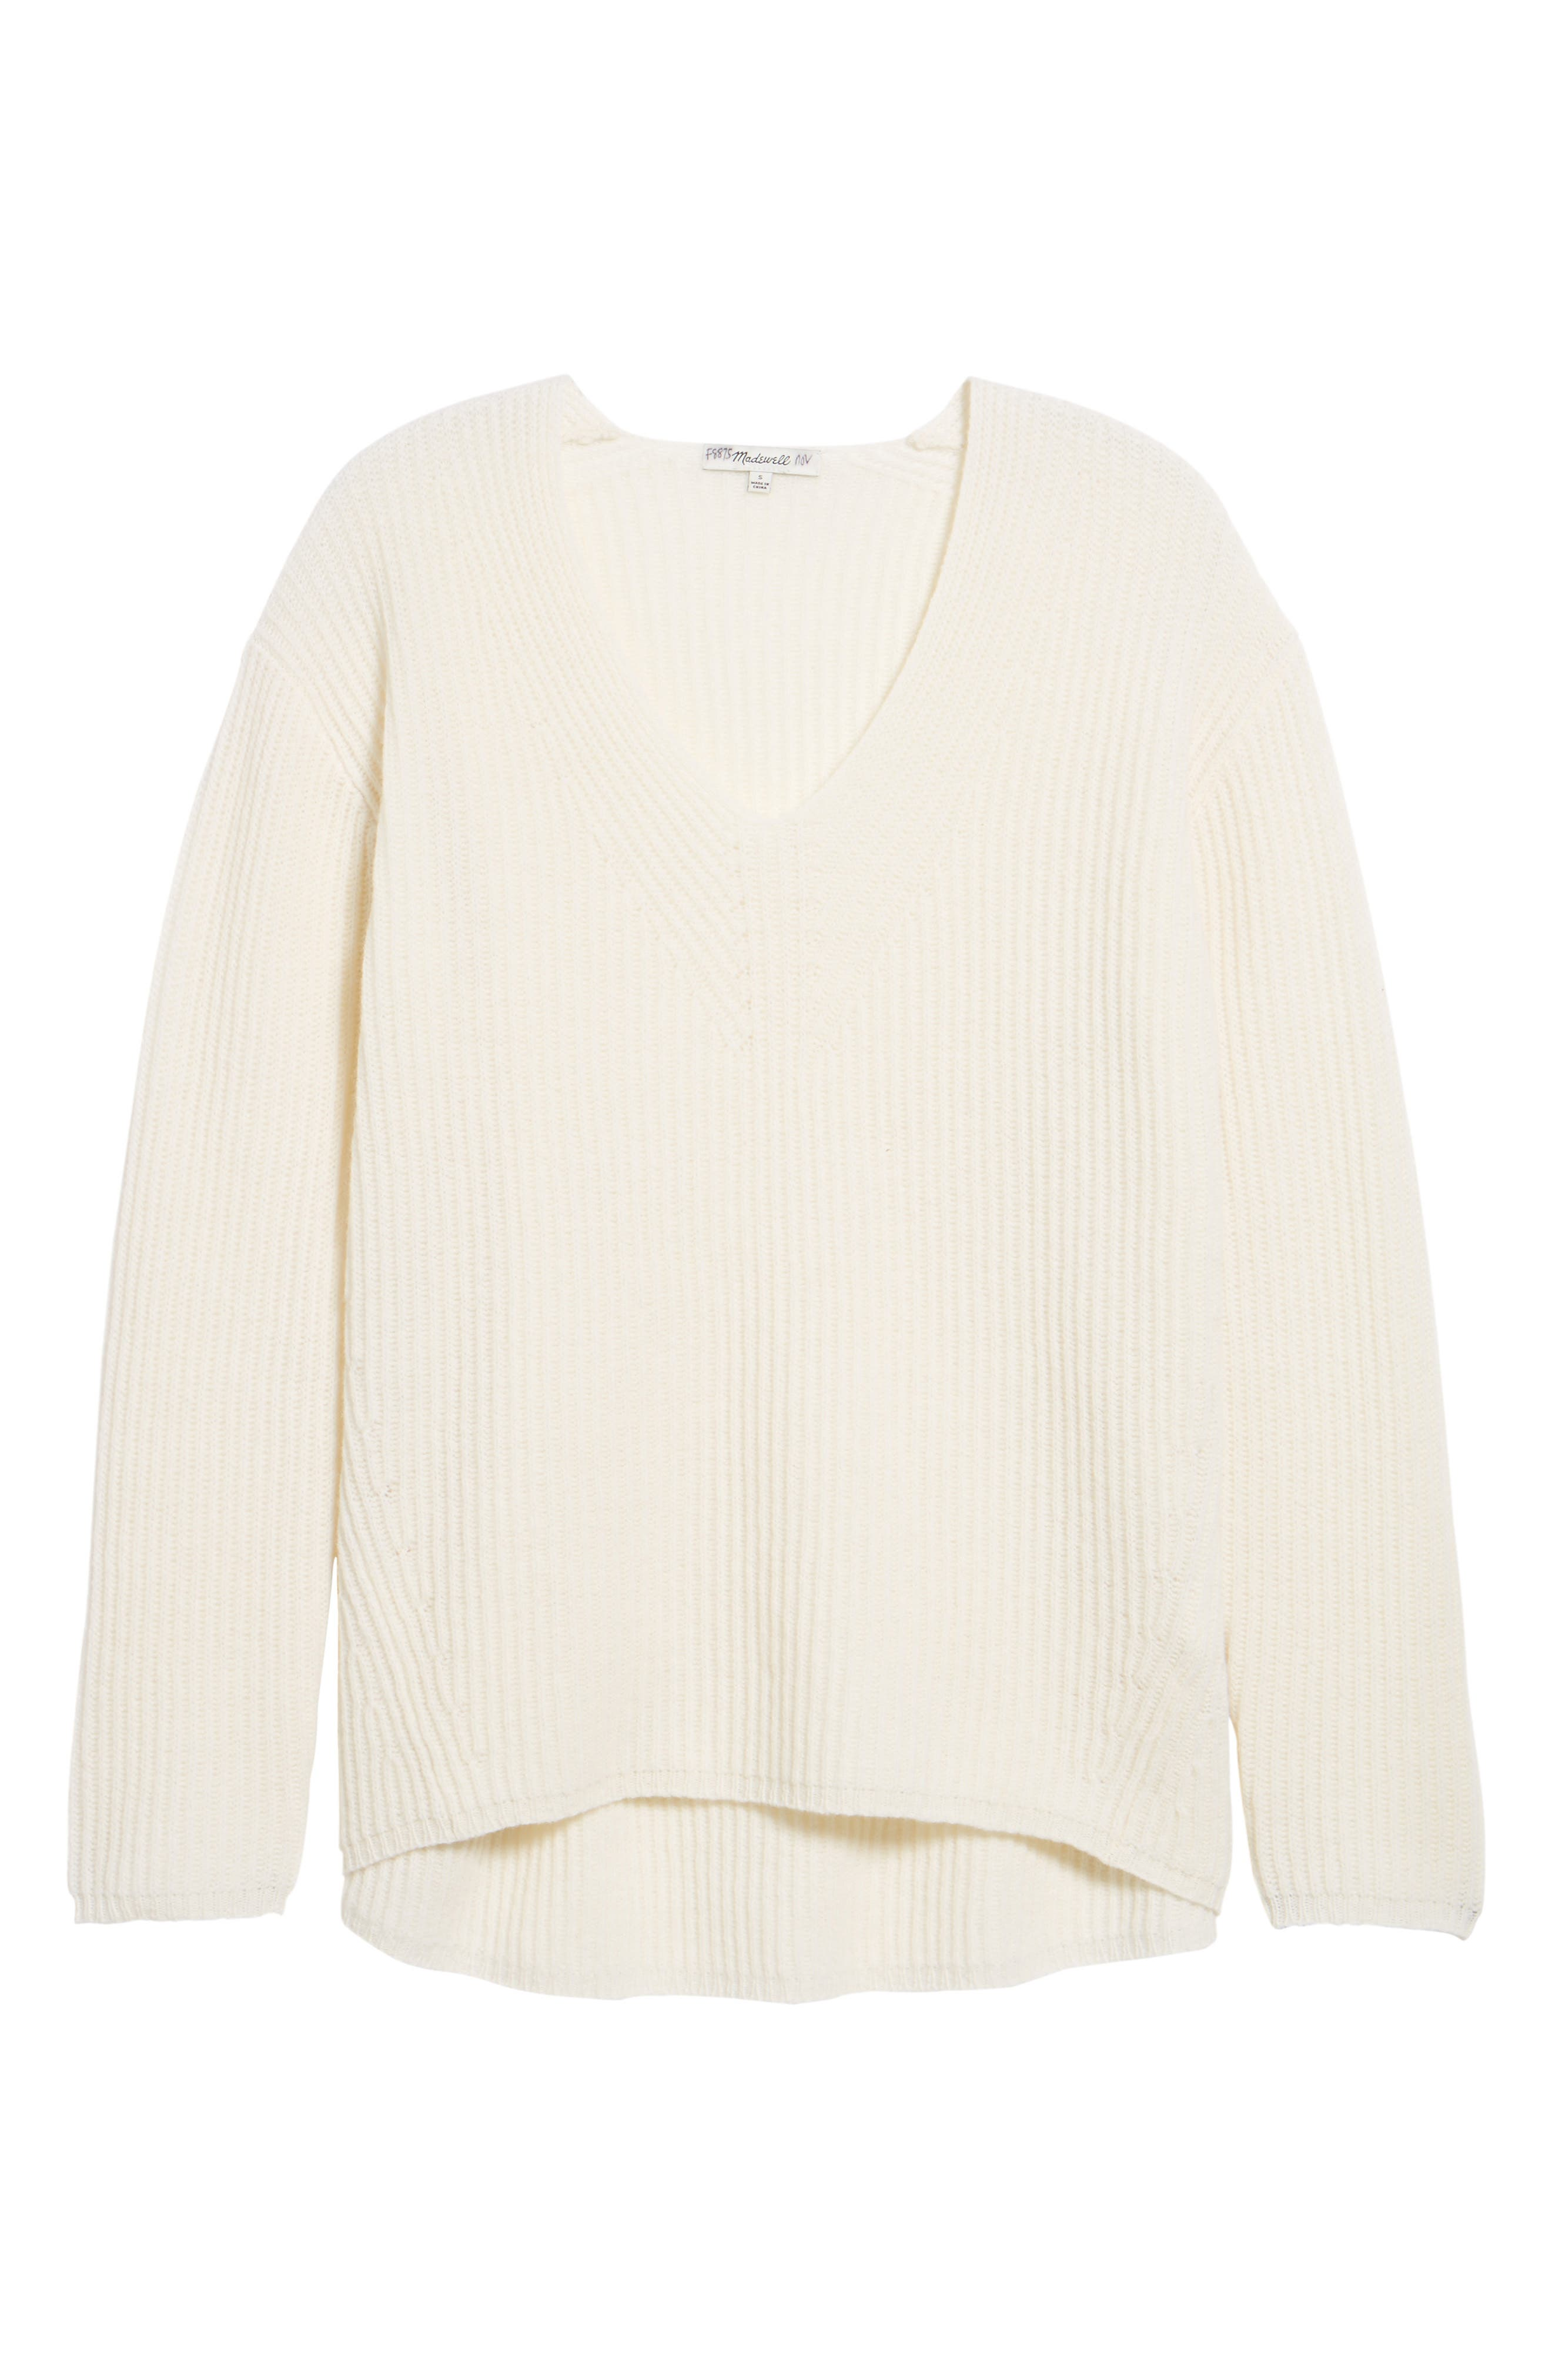 Woodside Pullover Sweater,                             Main thumbnail 1, color,                             Antique Cream